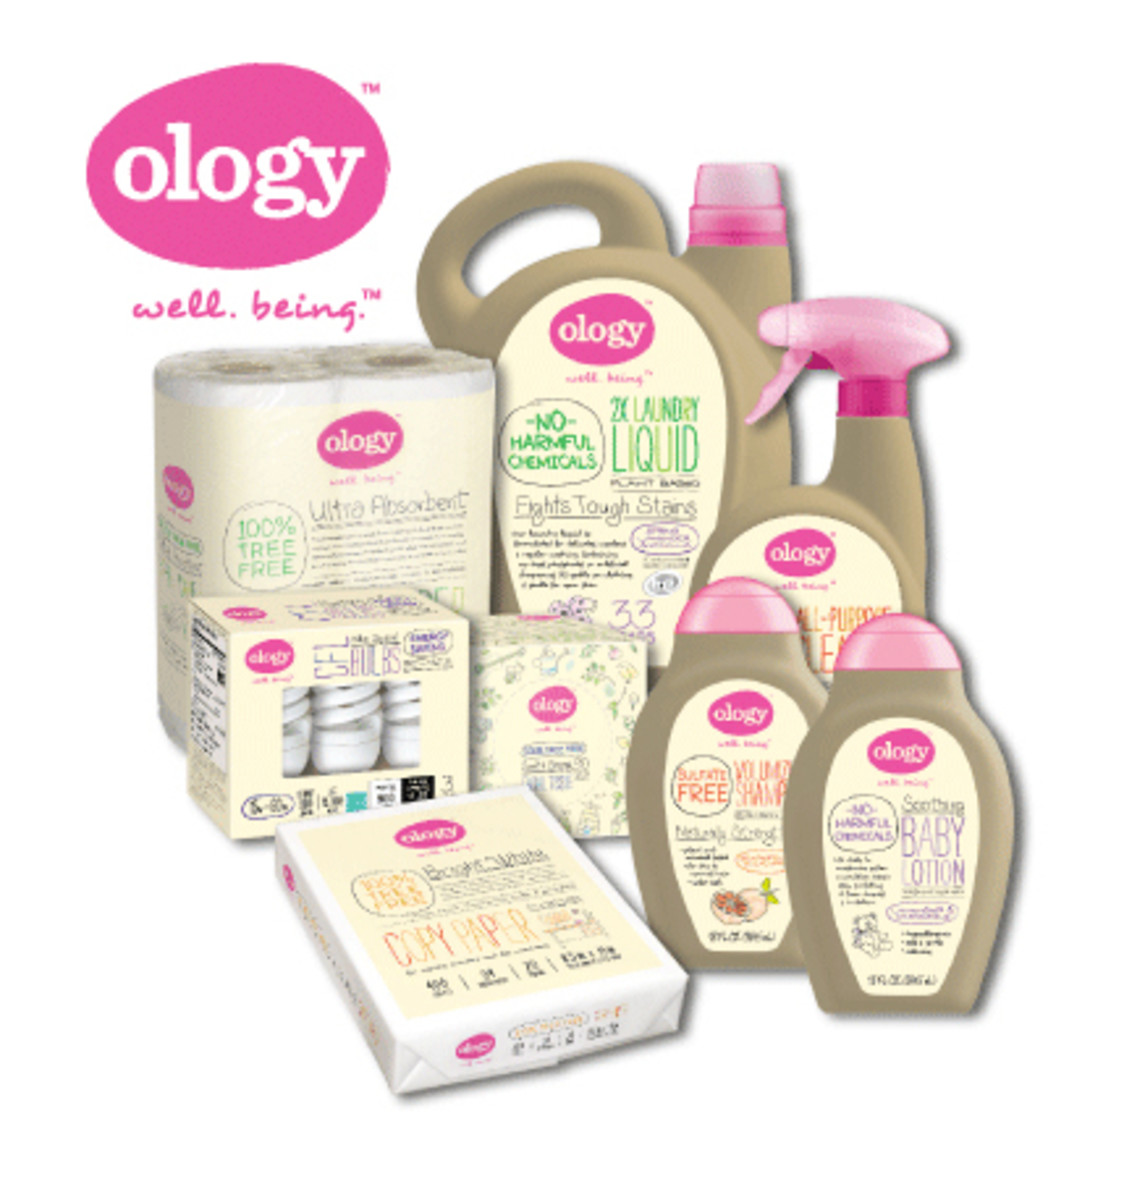 ology for walgreen's